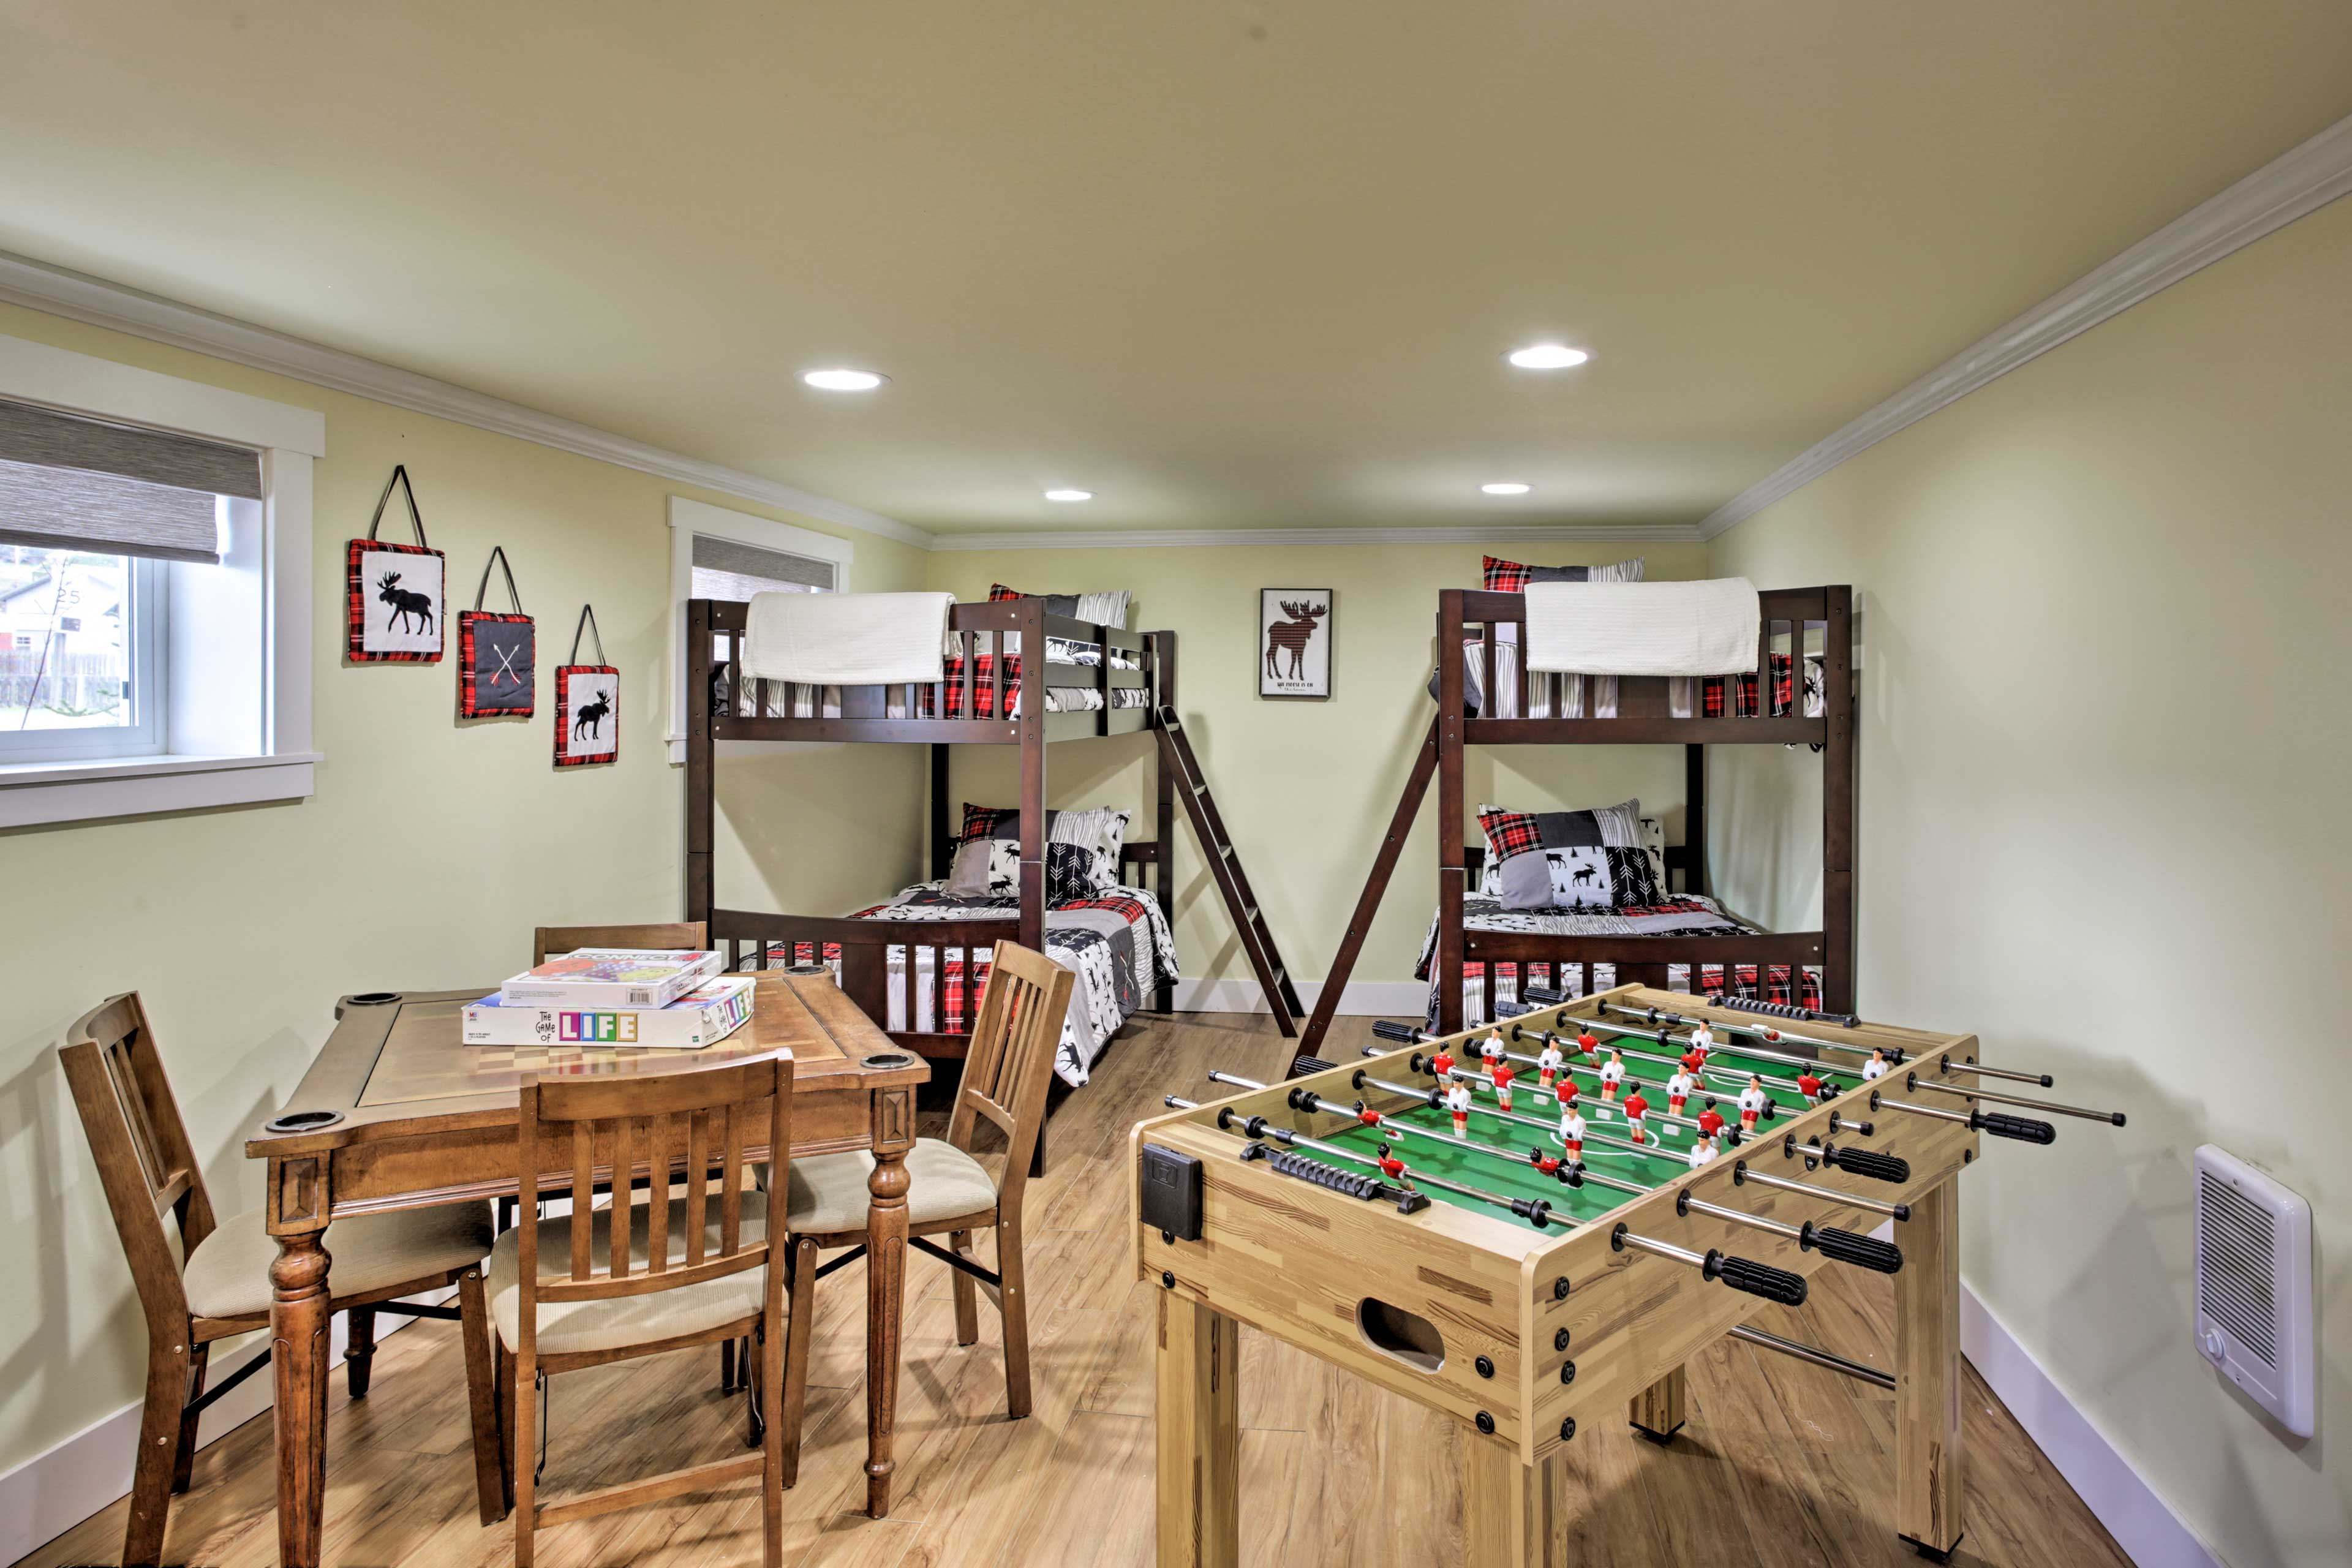 Downstairs, this second bedroom boasts both games and sleeping space!